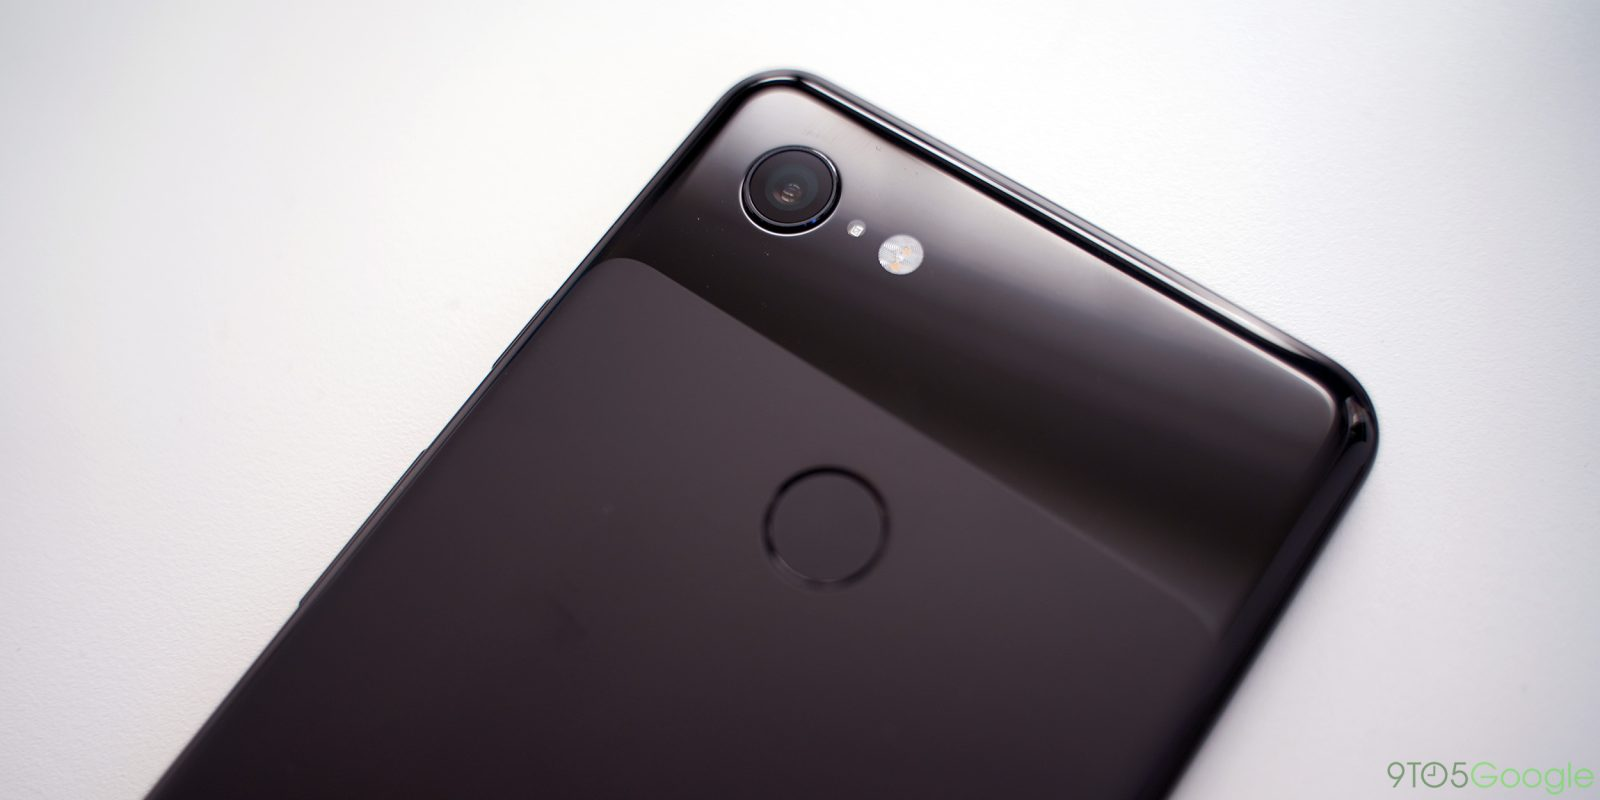 Top Stories: Pixel 3 DxO, Home Hub, more - 9to5Google